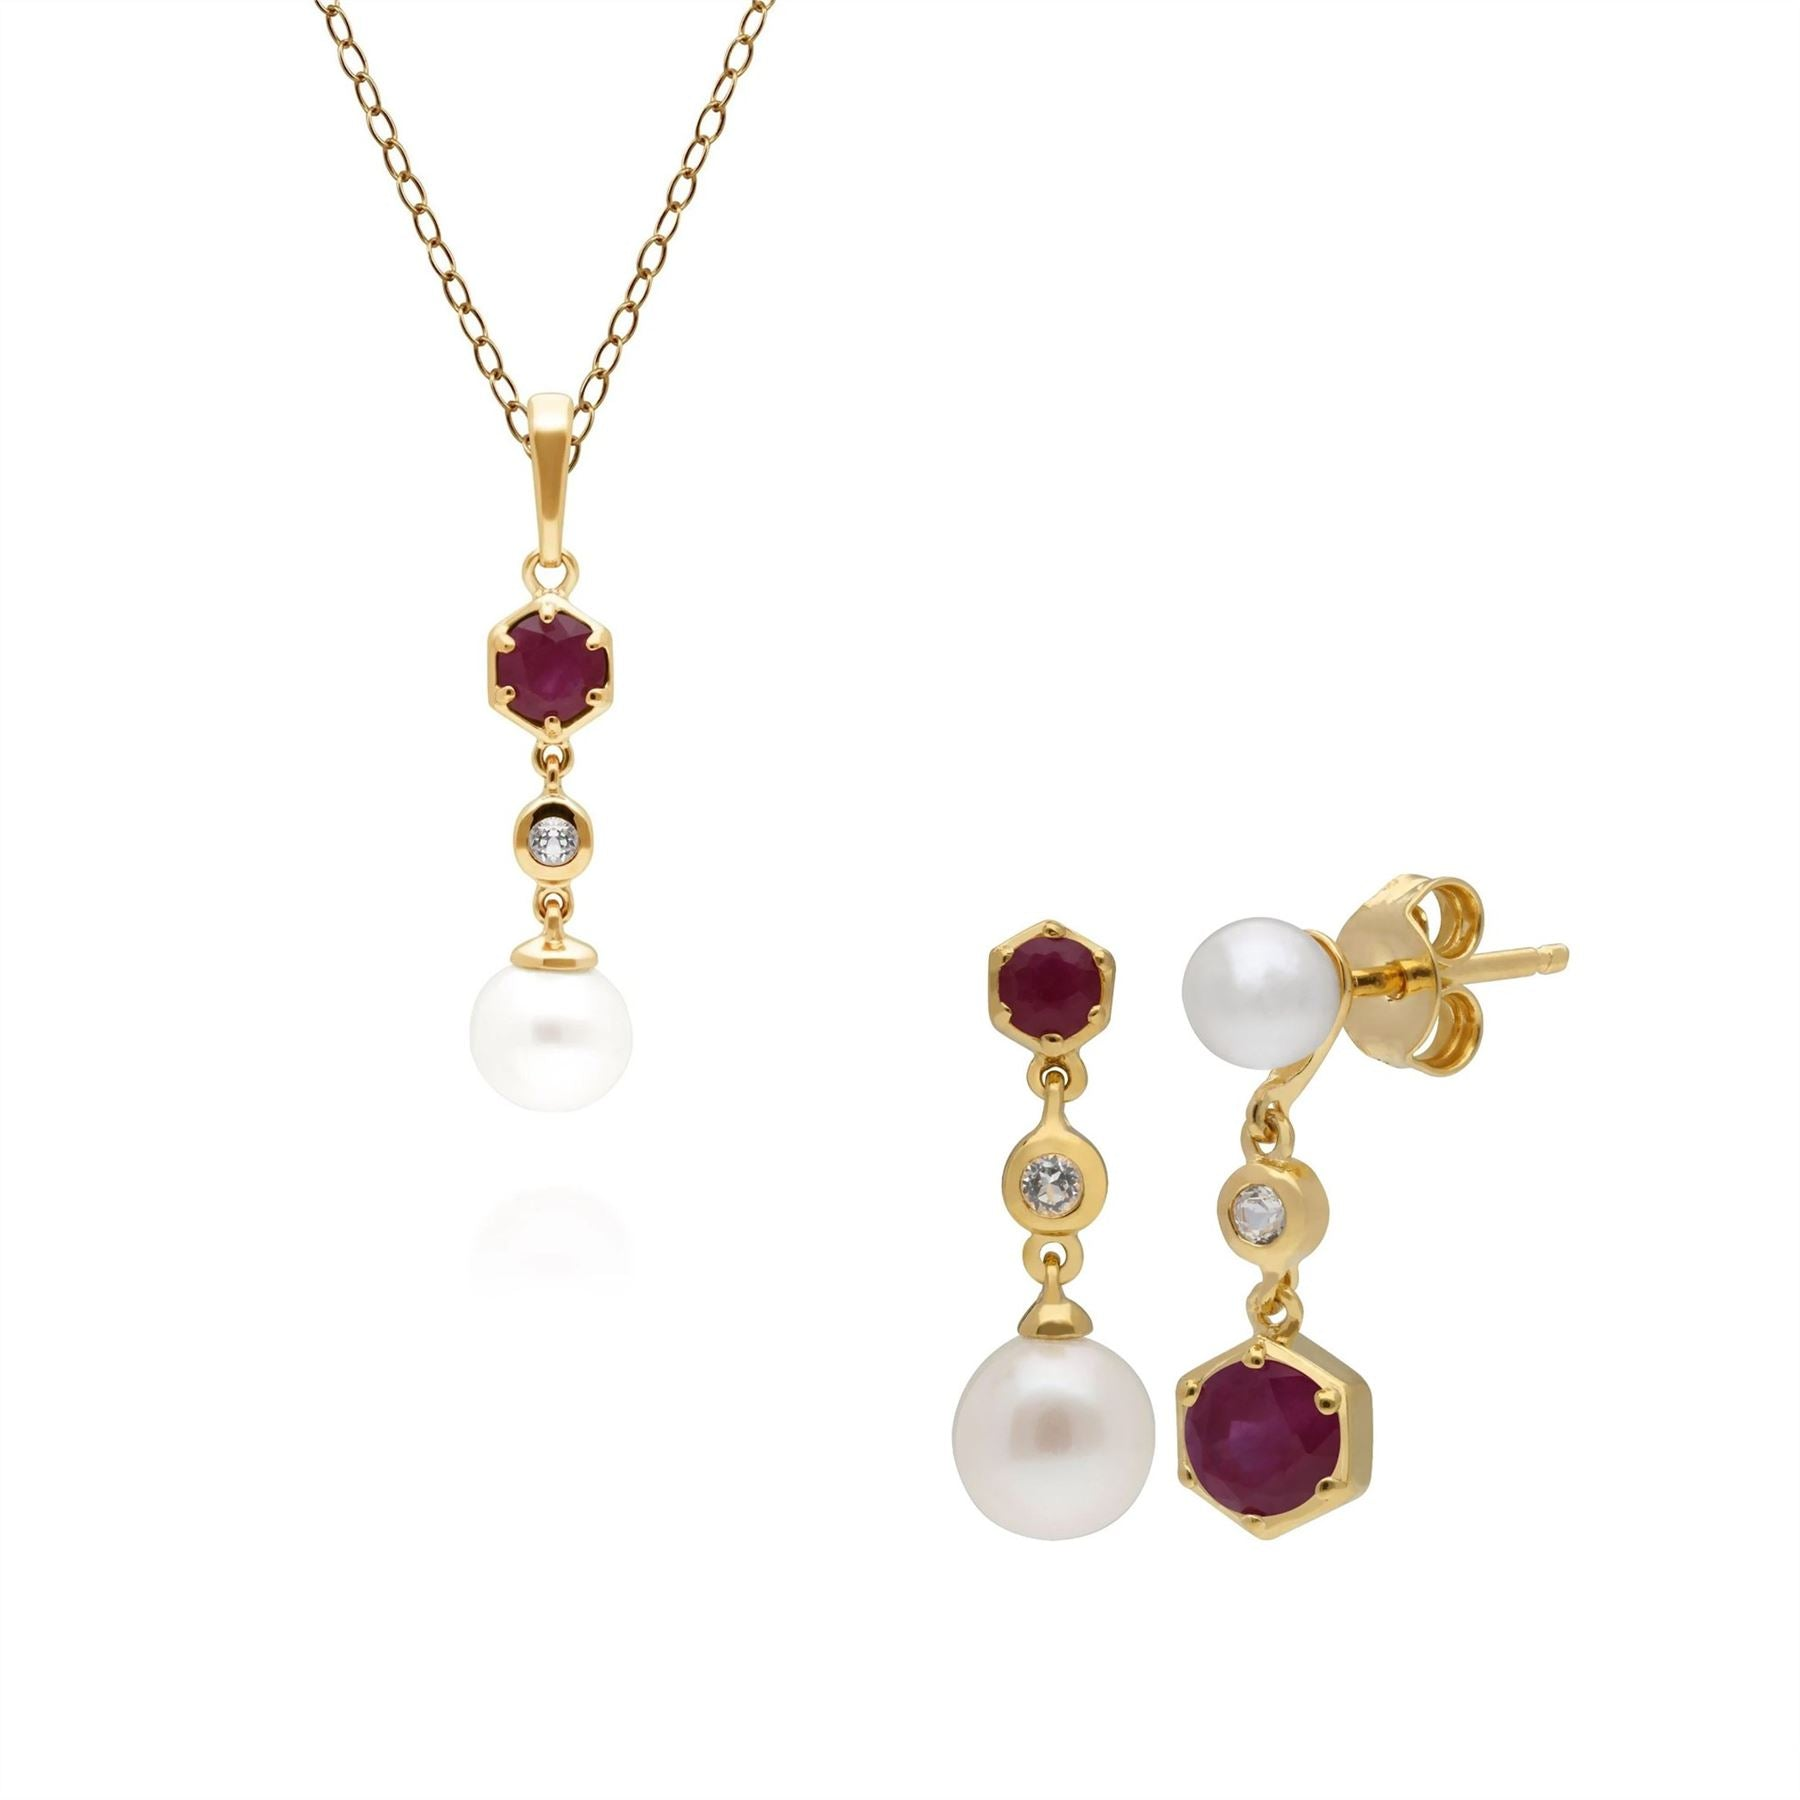 Modern Pearl, Topaz & Ruby Pendant & Earring Set in Gold Plated Silver Deal Price £ 235.00